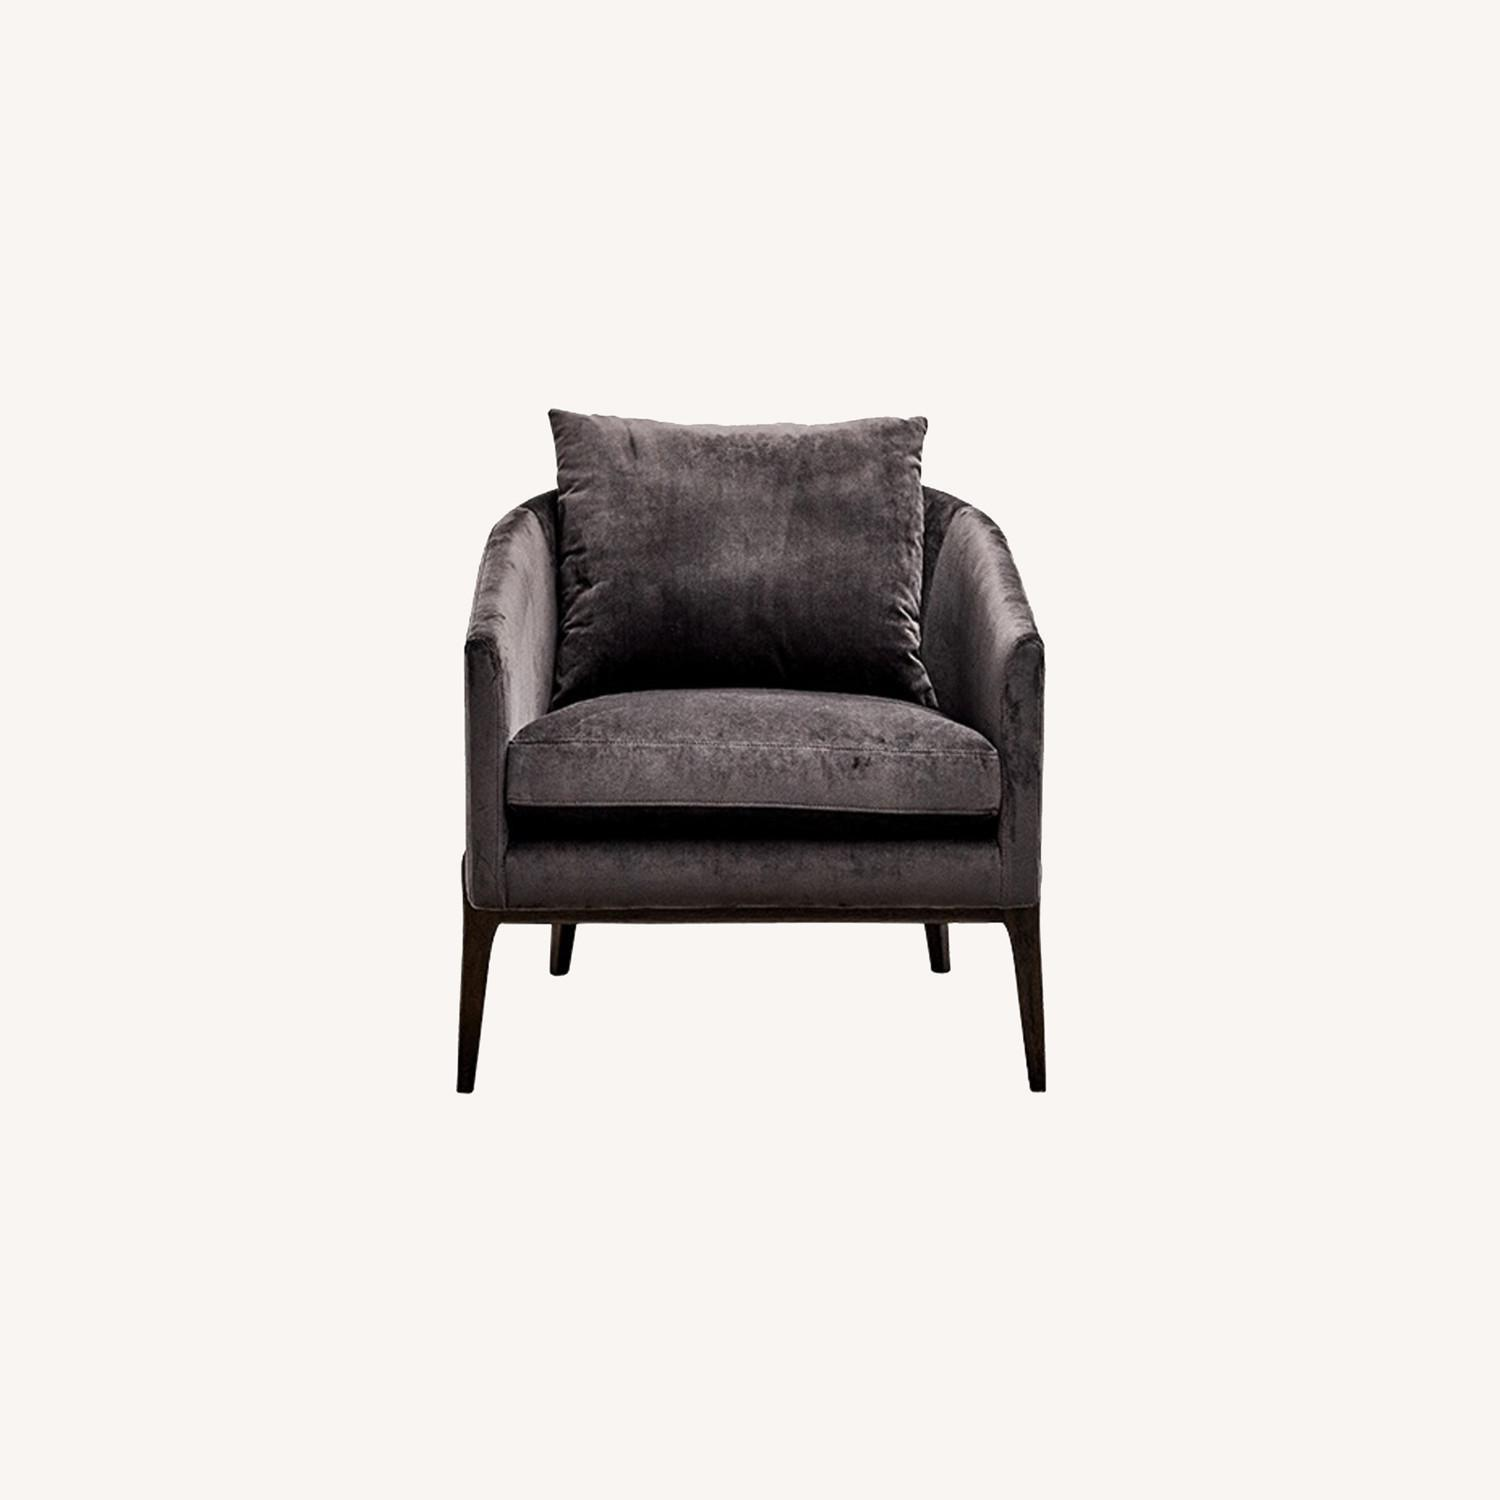 Feather Mossie Lounge Chair - image-0